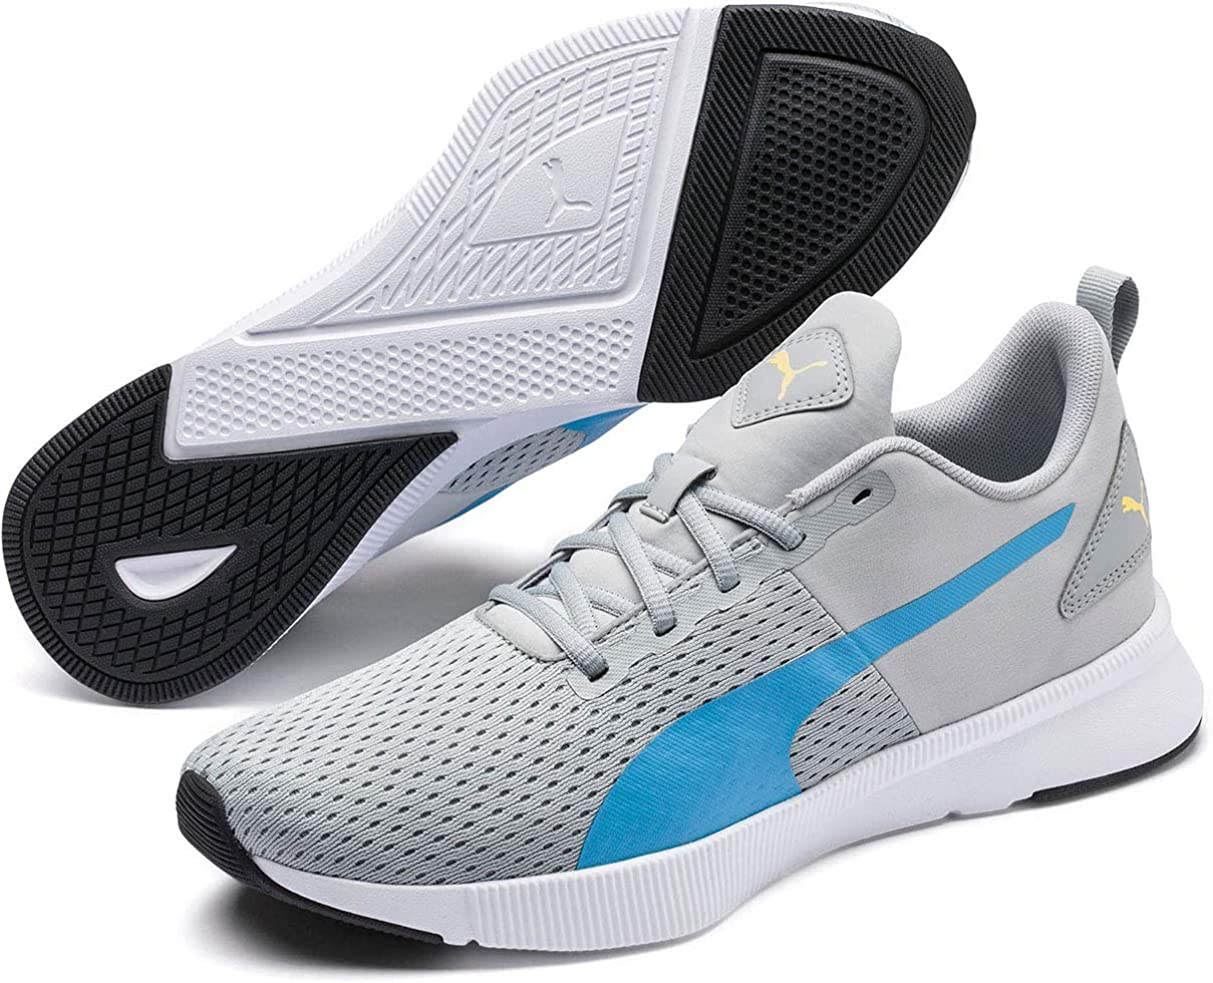 PUMA Women's Flyer Runner Cross Trainer